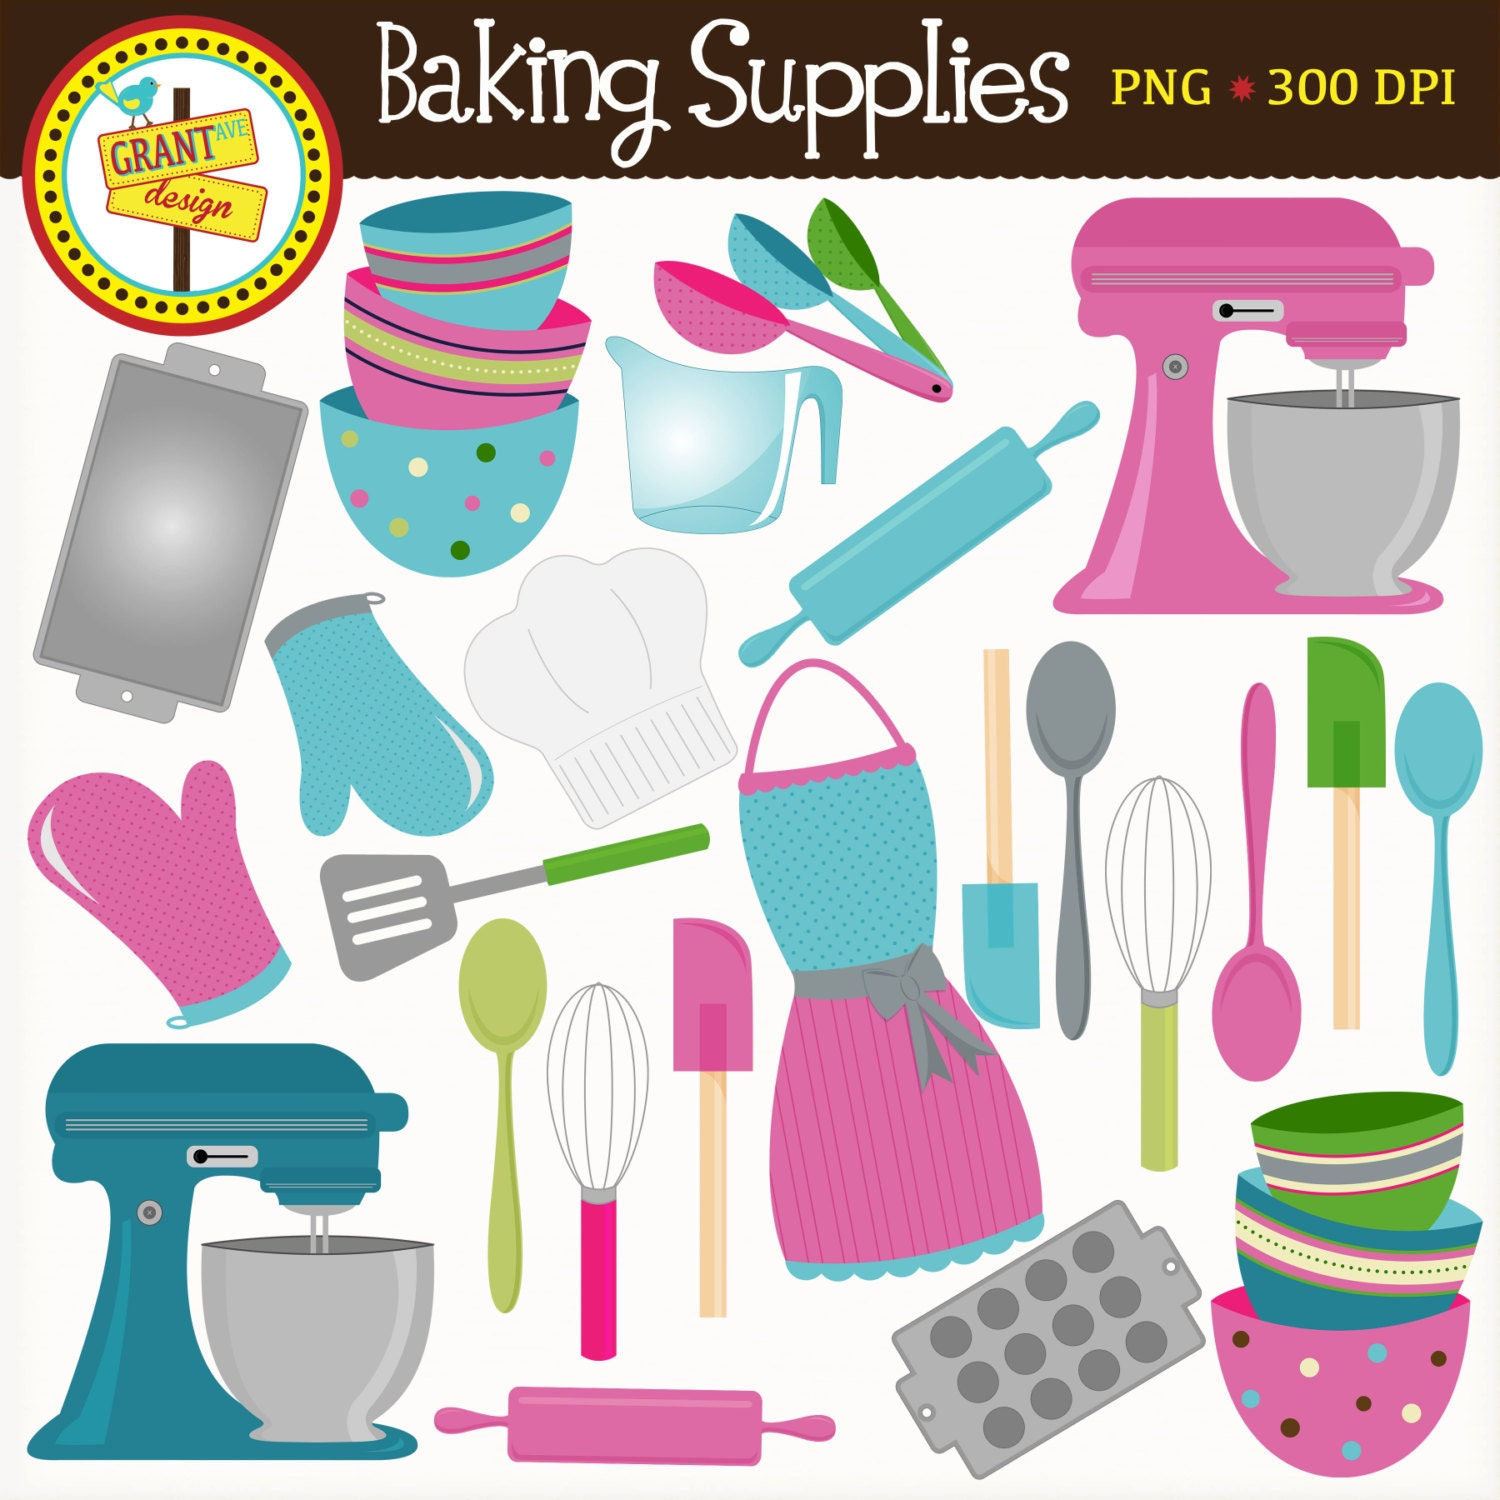 Baking Supplies Clipart Cute Baking Clip Art Pink and Blue